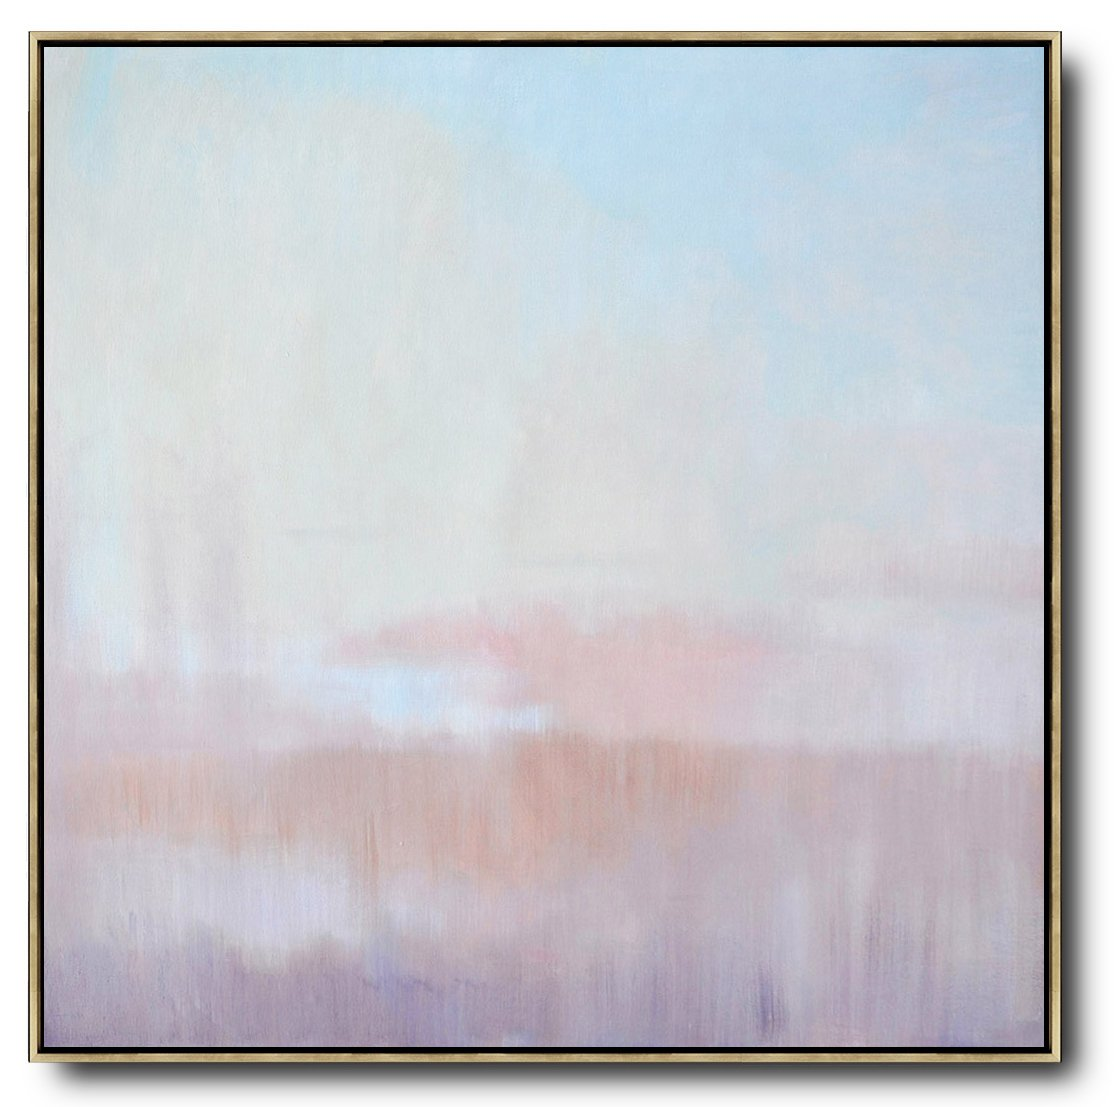 Extra Large Painting,Oversized Abstract Landscape Oil Painting,Unique Canvas Art,Blue,Pink,Purple.etc